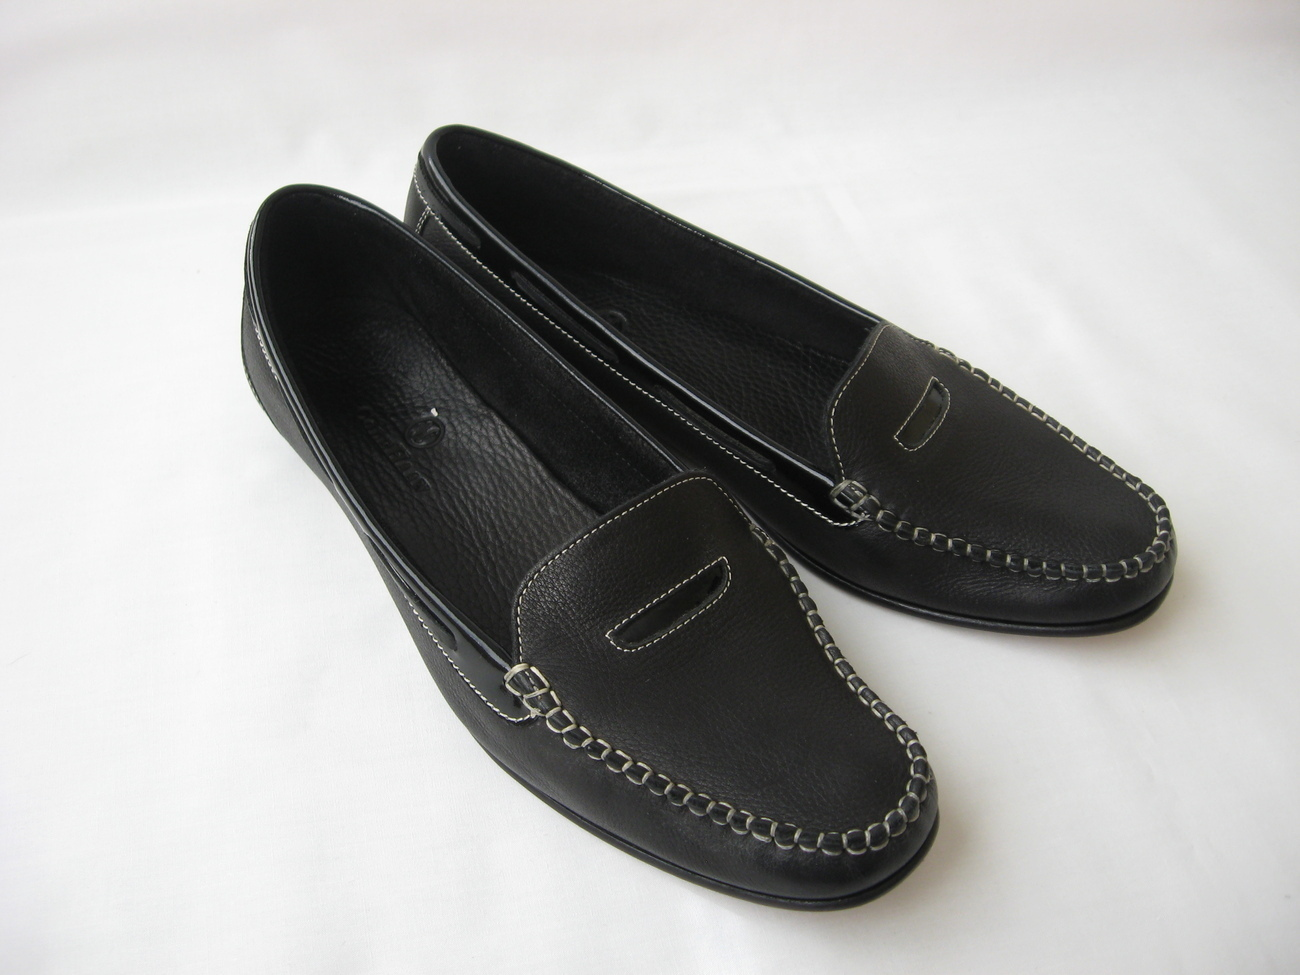 cole haan leather loafers slip on shoes size 8 black